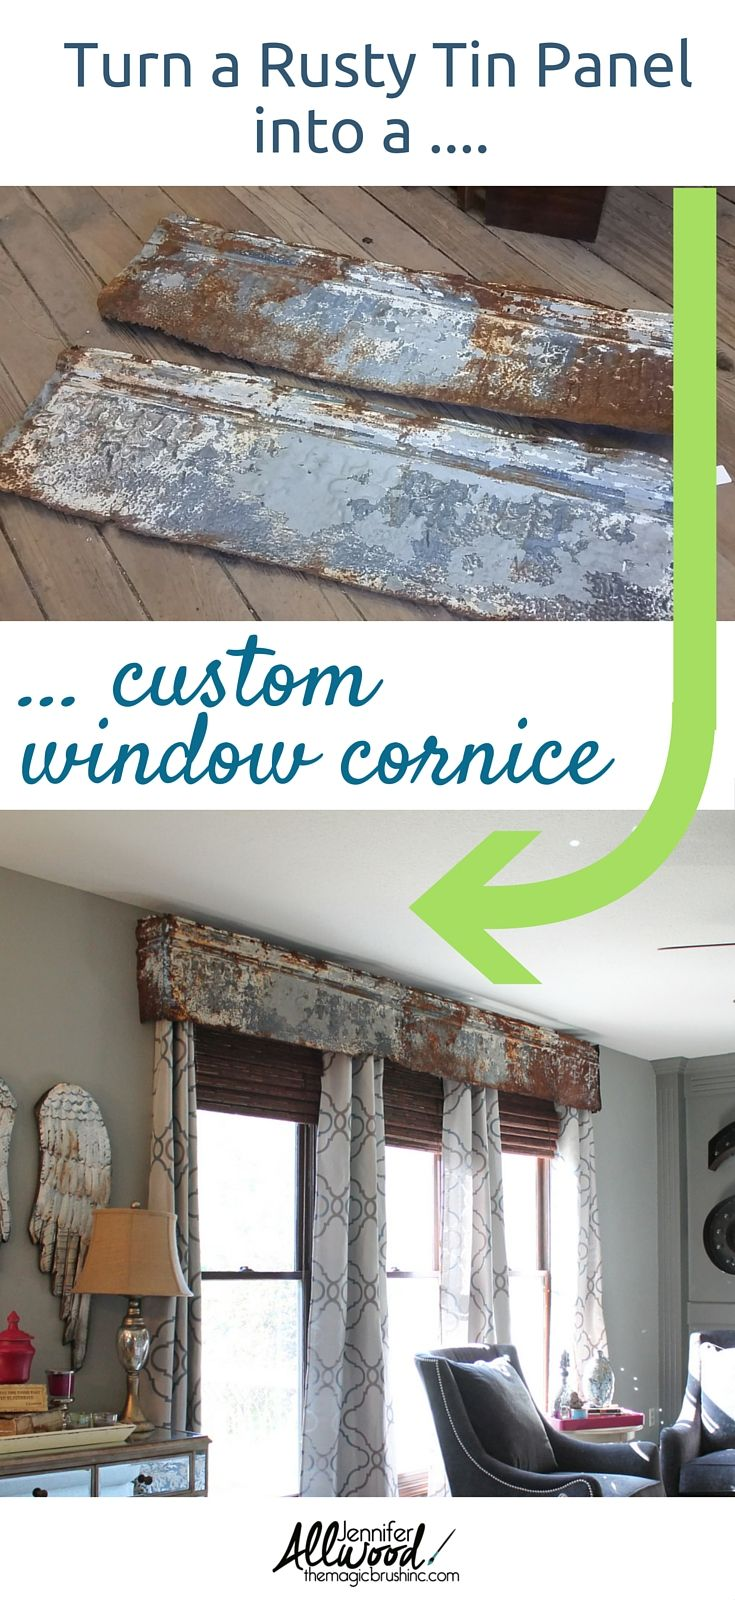 We made a repurposed cornice board from old rusty tin panels!